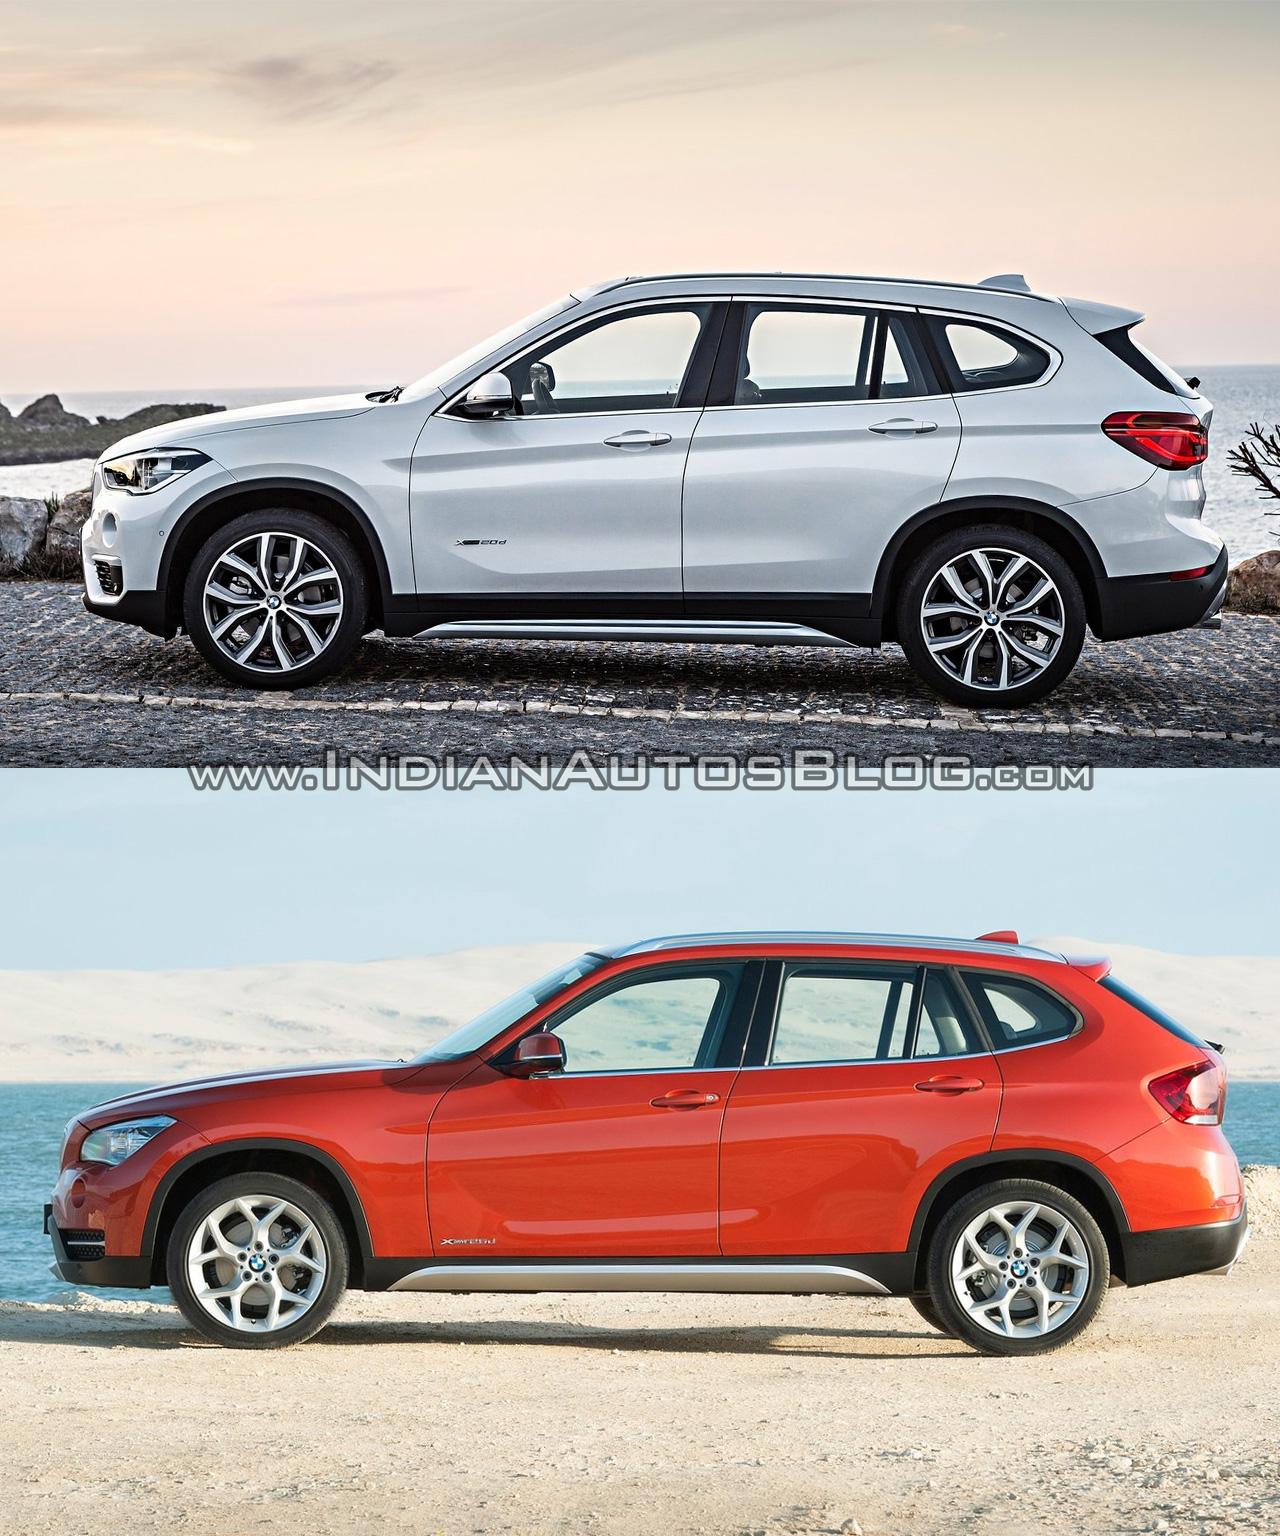 2016 bmw x1 vs 2014 bmw x1 side old vs new. Black Bedroom Furniture Sets. Home Design Ideas